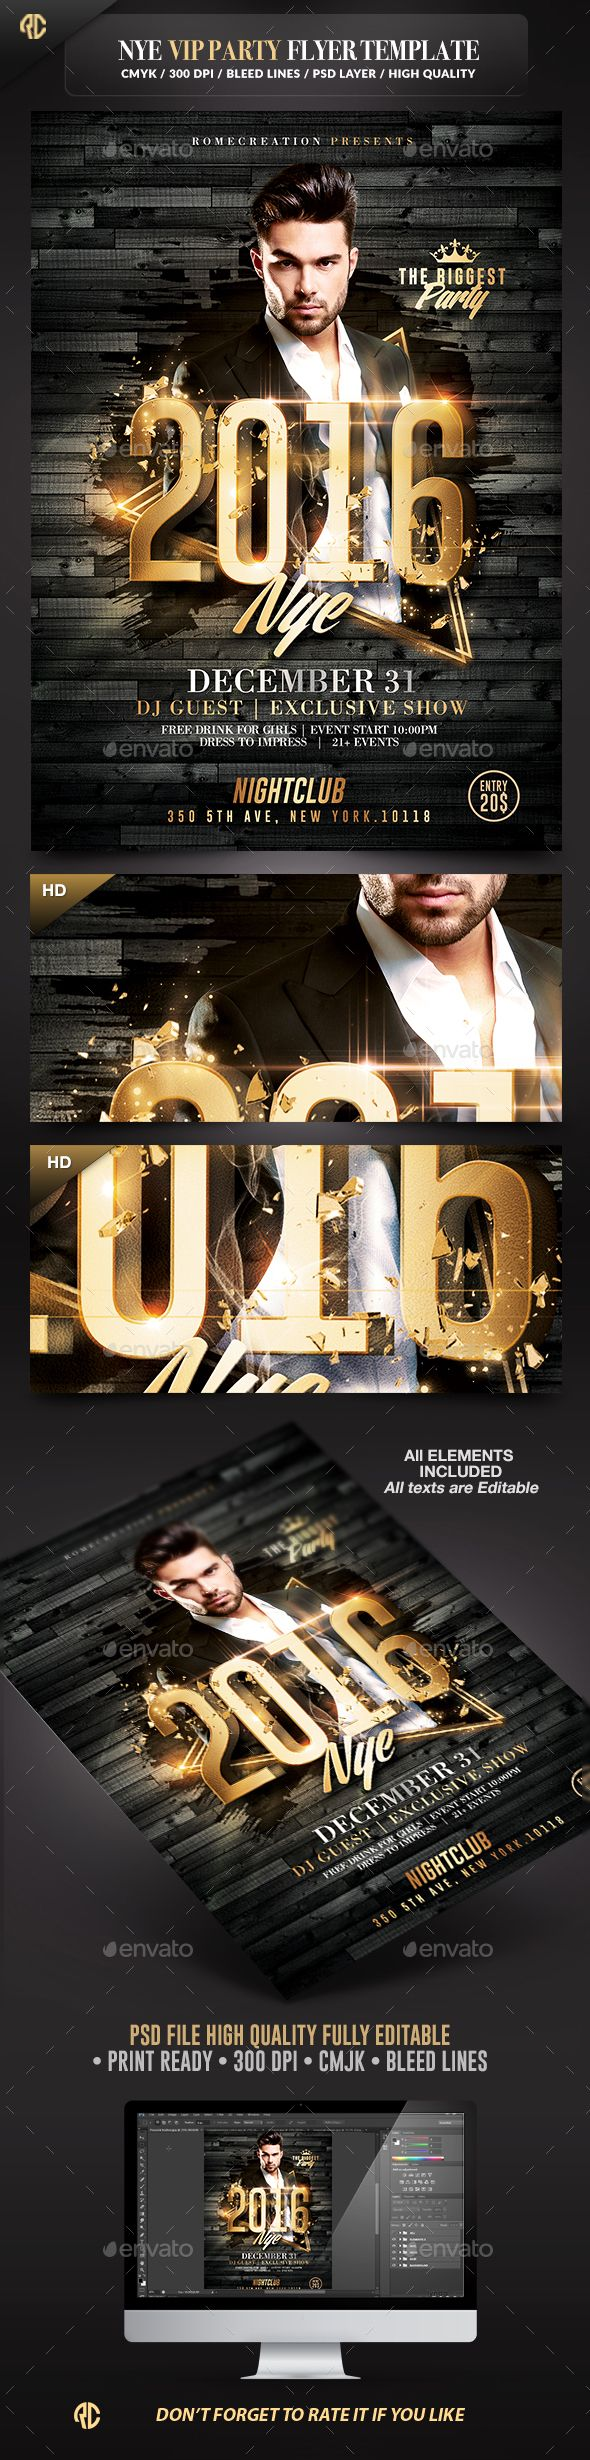 NYE Vip Party | Gold Flyer Template